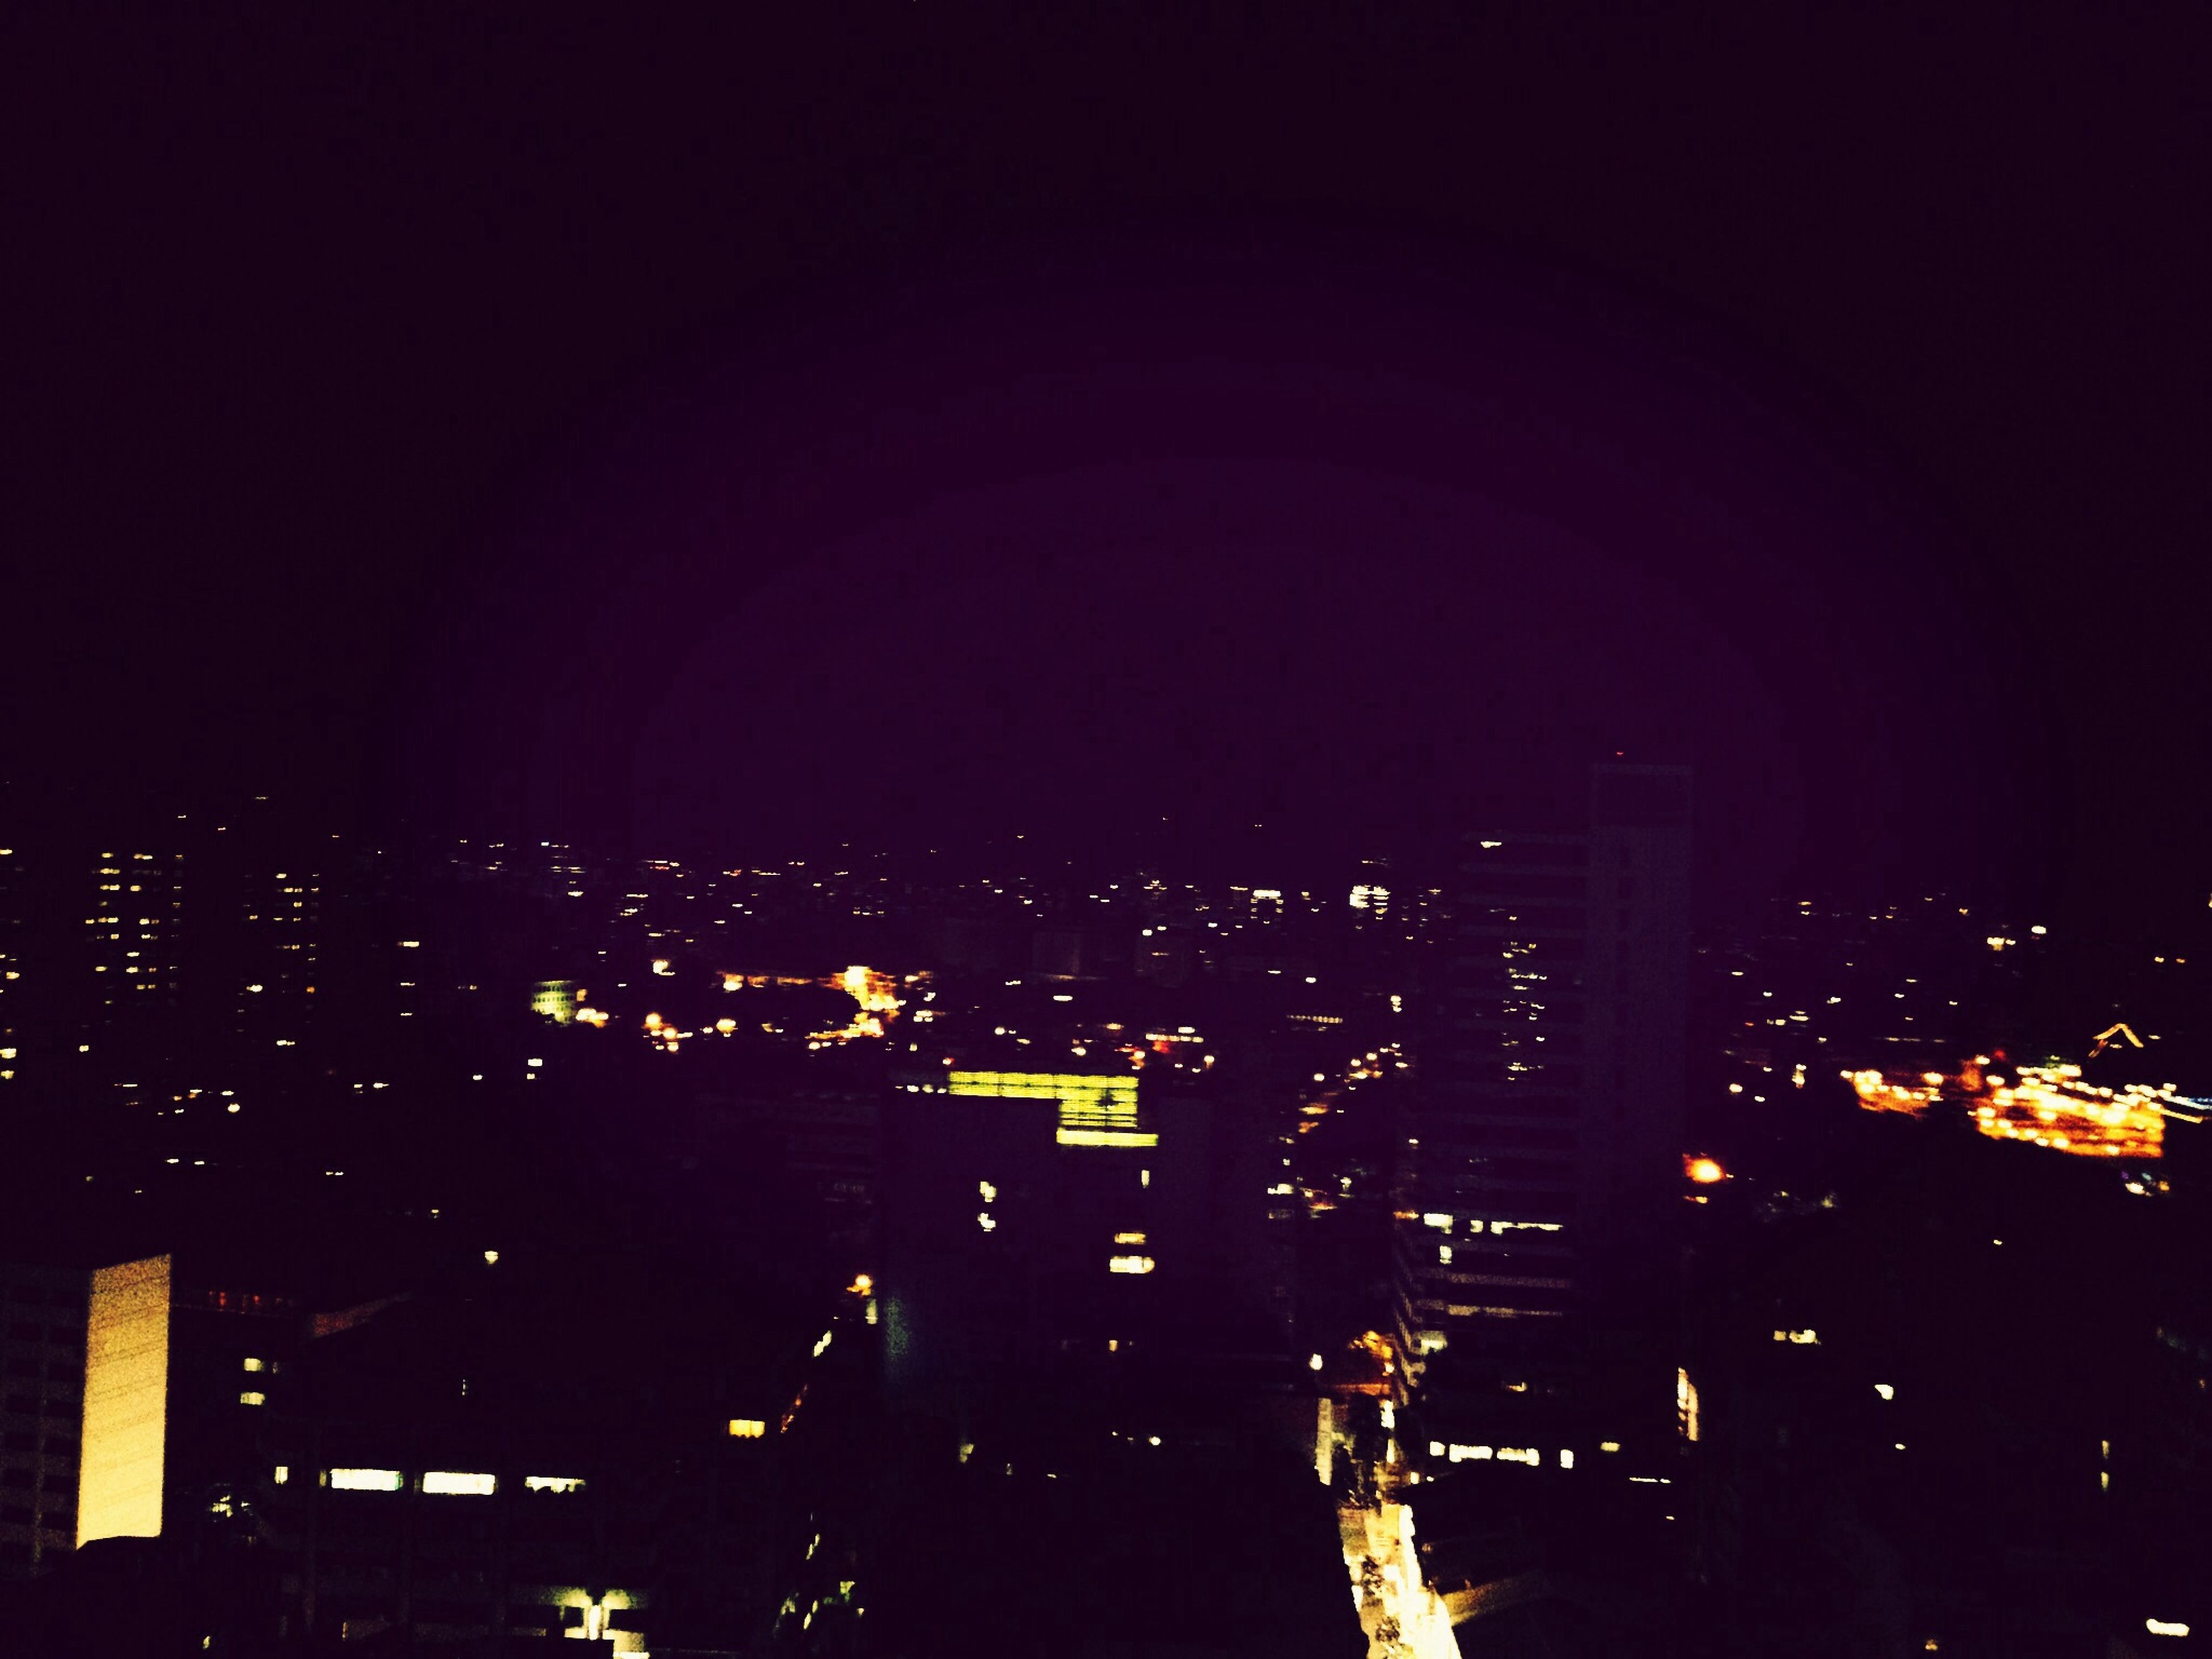 night, building exterior, city, illuminated, cityscape, architecture, built structure, crowded, high angle view, residential district, dark, copy space, residential structure, residential building, city life, skyscraper, sky, aerial view, clear sky, office building